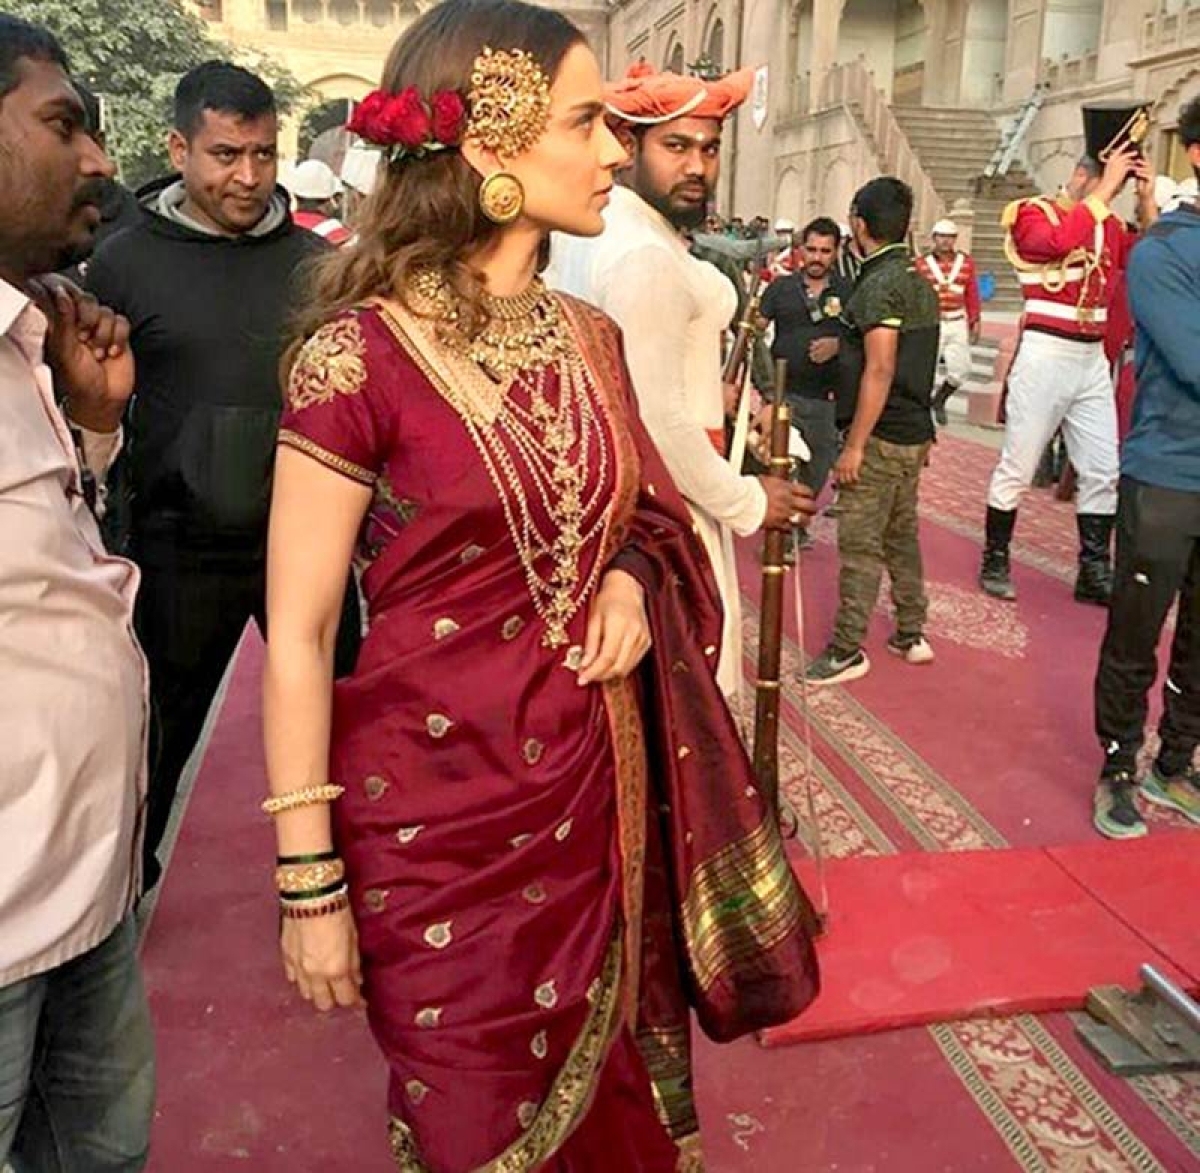 LEAKED! Kangana Ranaut looks regal as young Rani Lakshmibai on 'Manikarnika: The Queen of Jhansi' sets